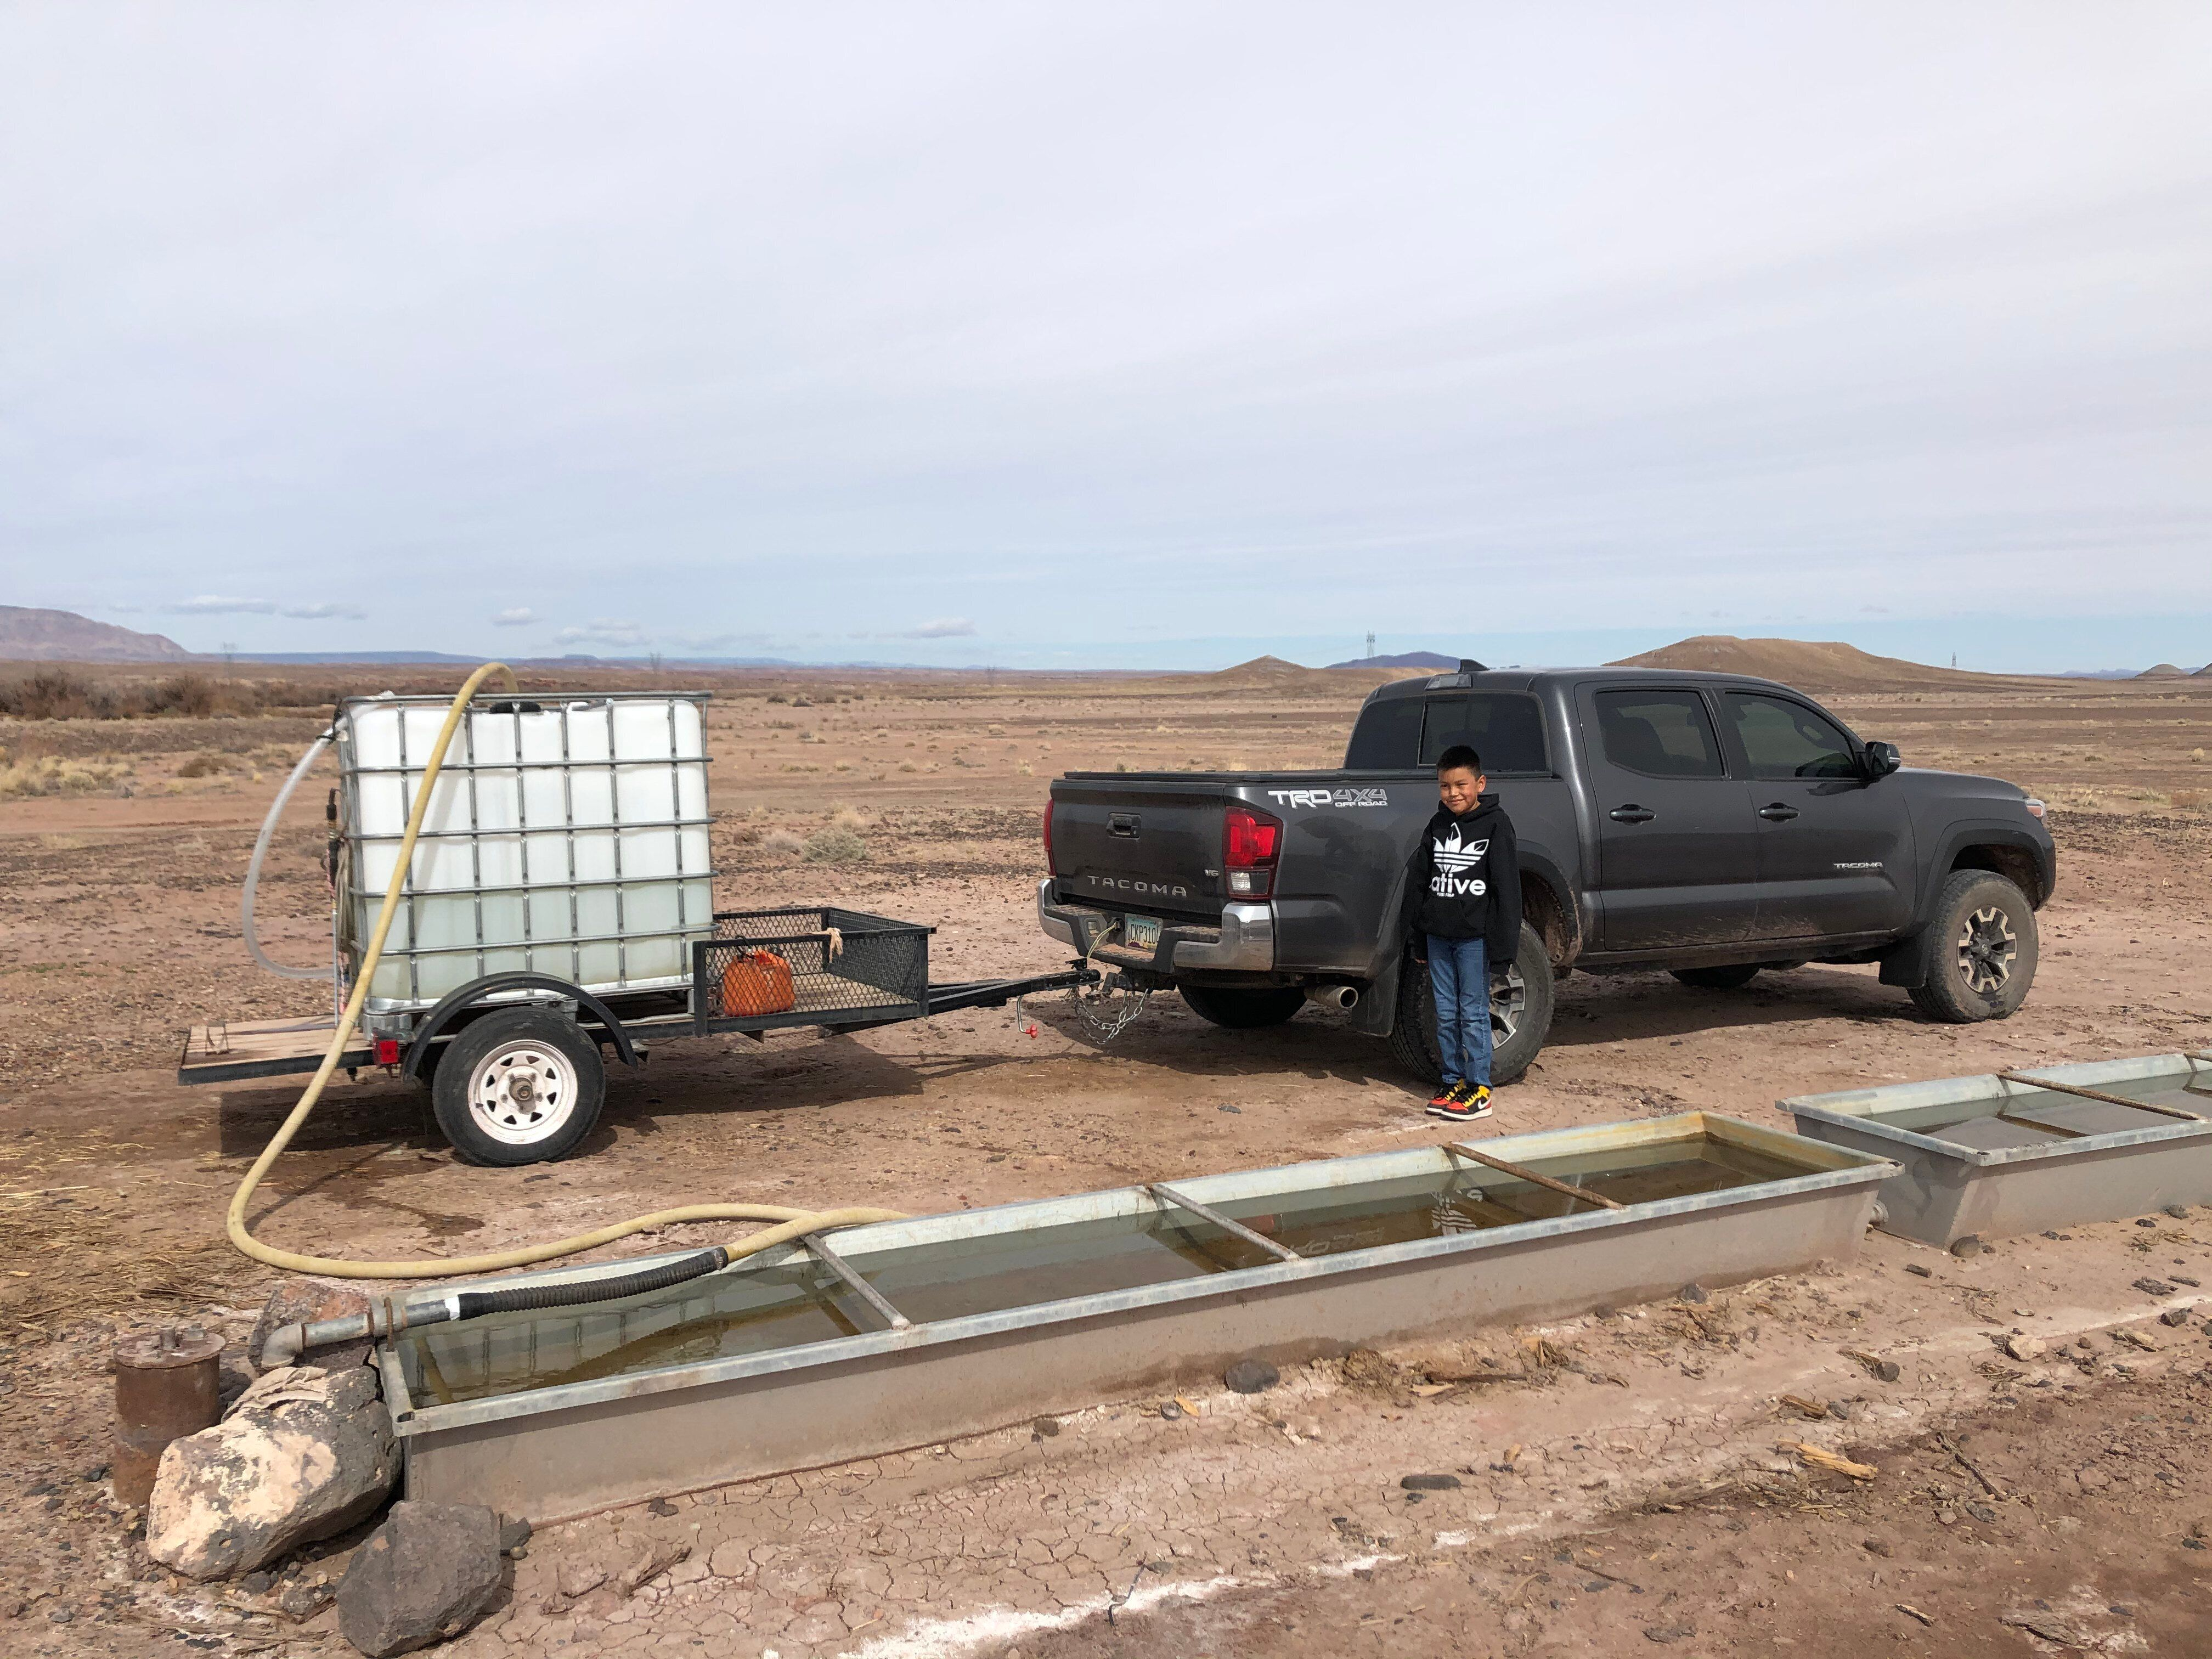 Shanna Yazzie's 10-year-old son stands by the family's truck as water for their use is pumped from a nearby windmill.